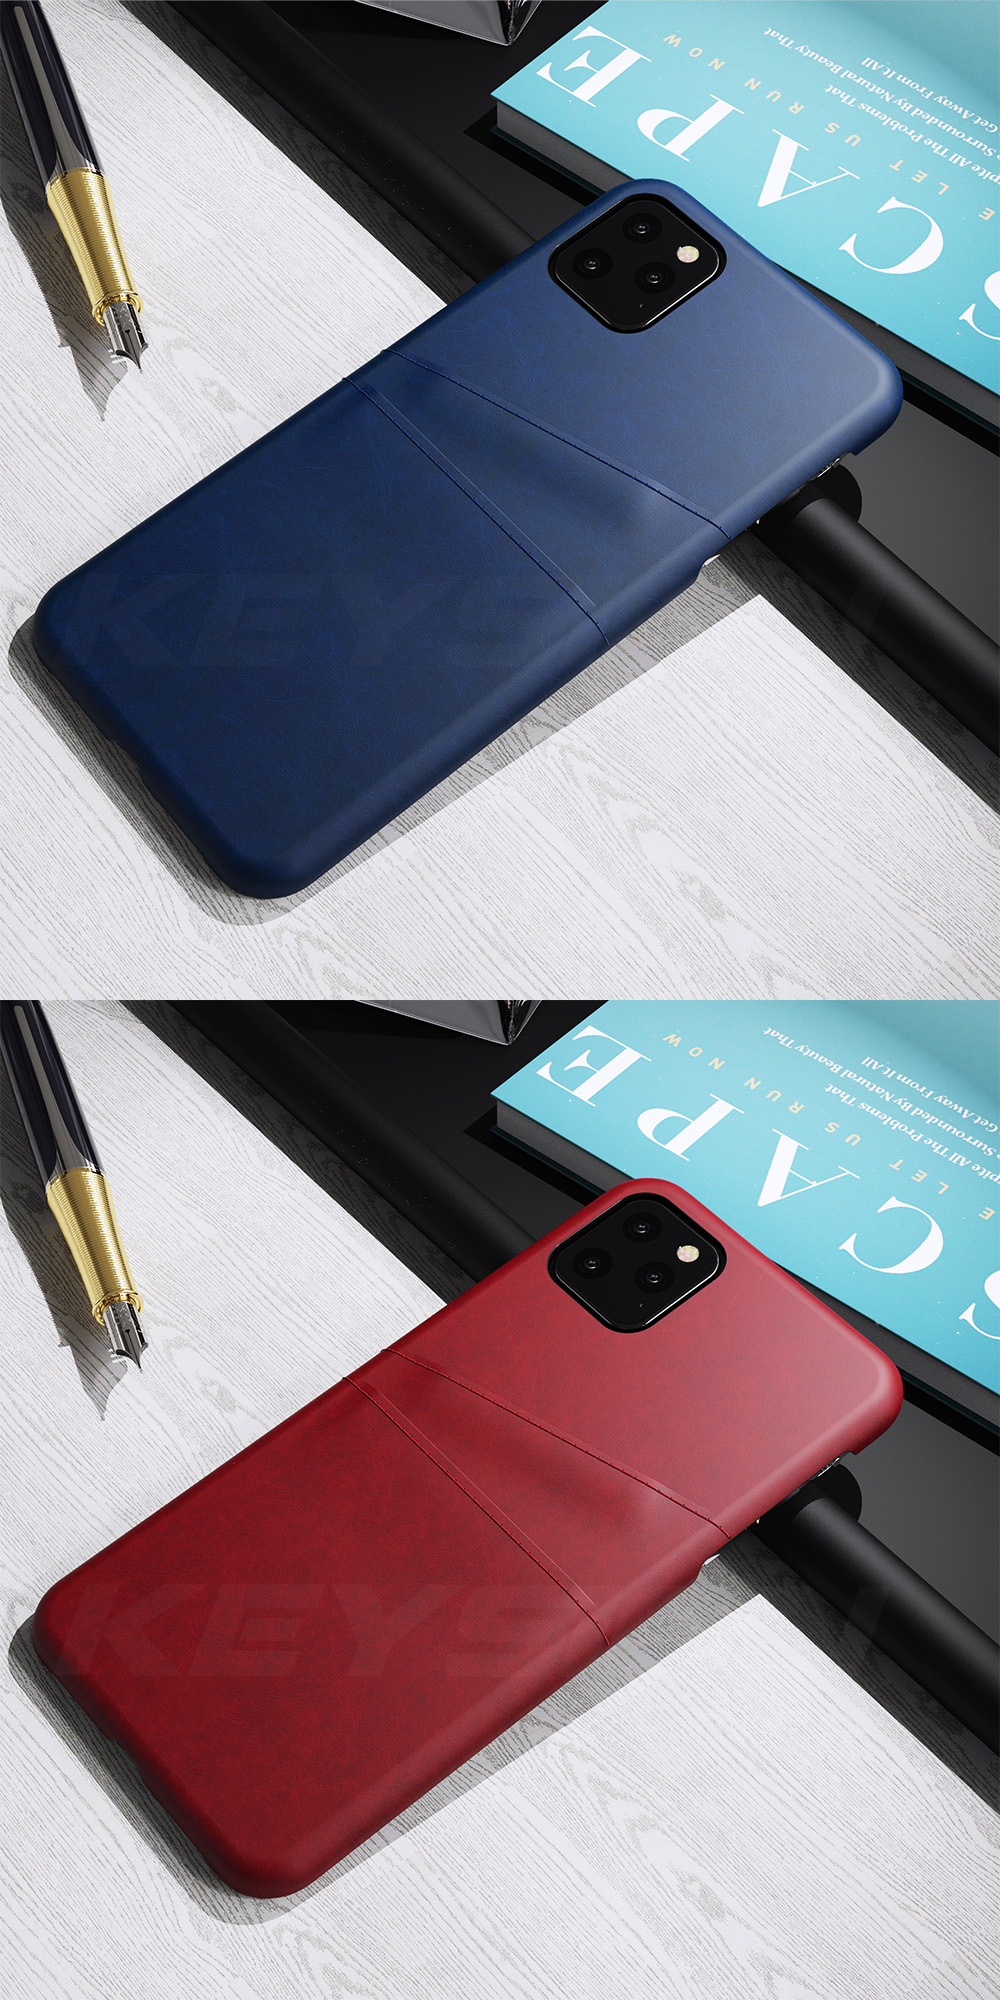 KEYSION Leather Card Pocket Cases for iPhone 11/11 Pro/11 Pro Max 5